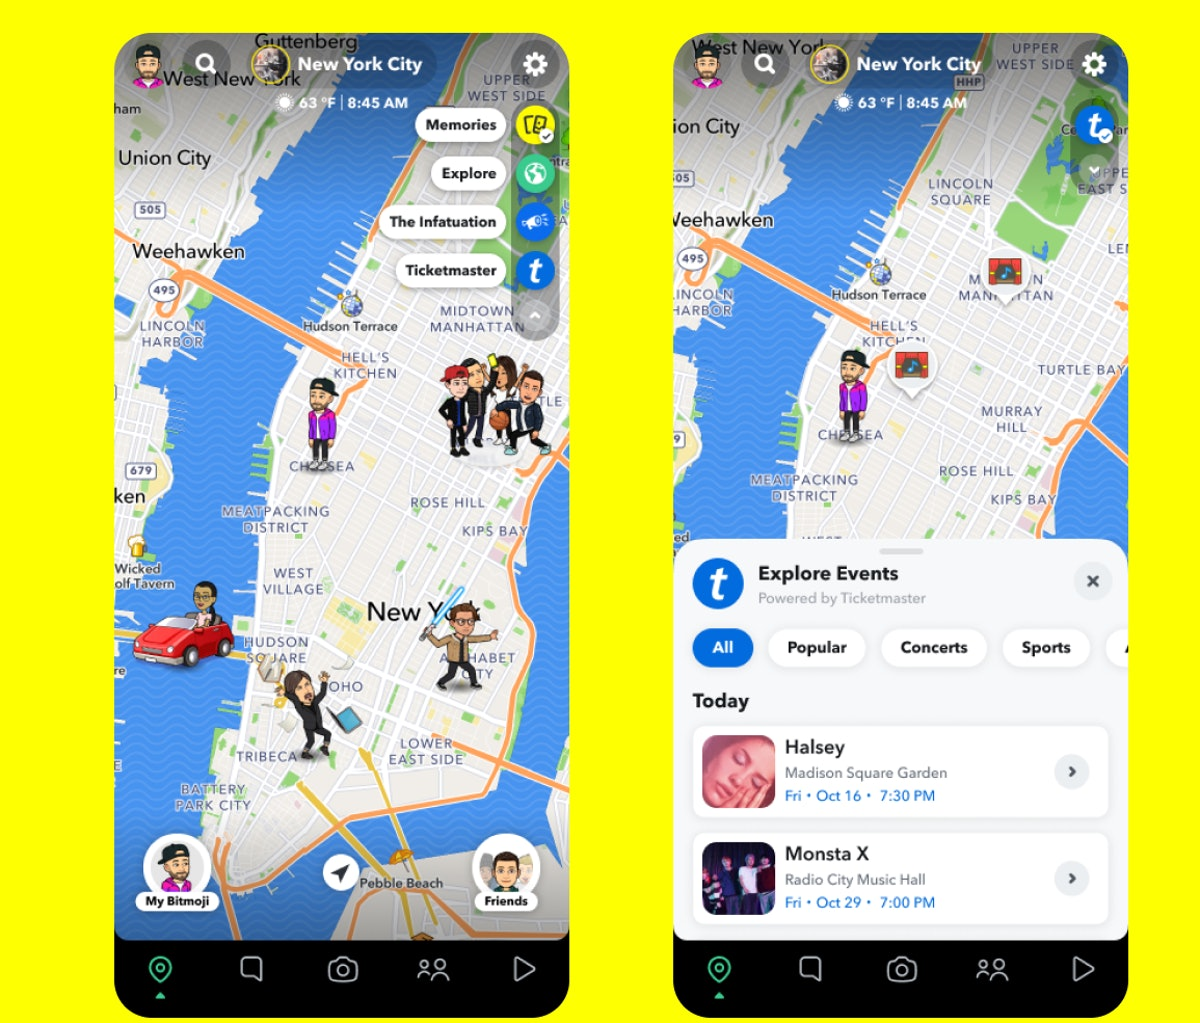 Snapchat is releasing Map Layers on the app that show you restaurants and concerts nearby.